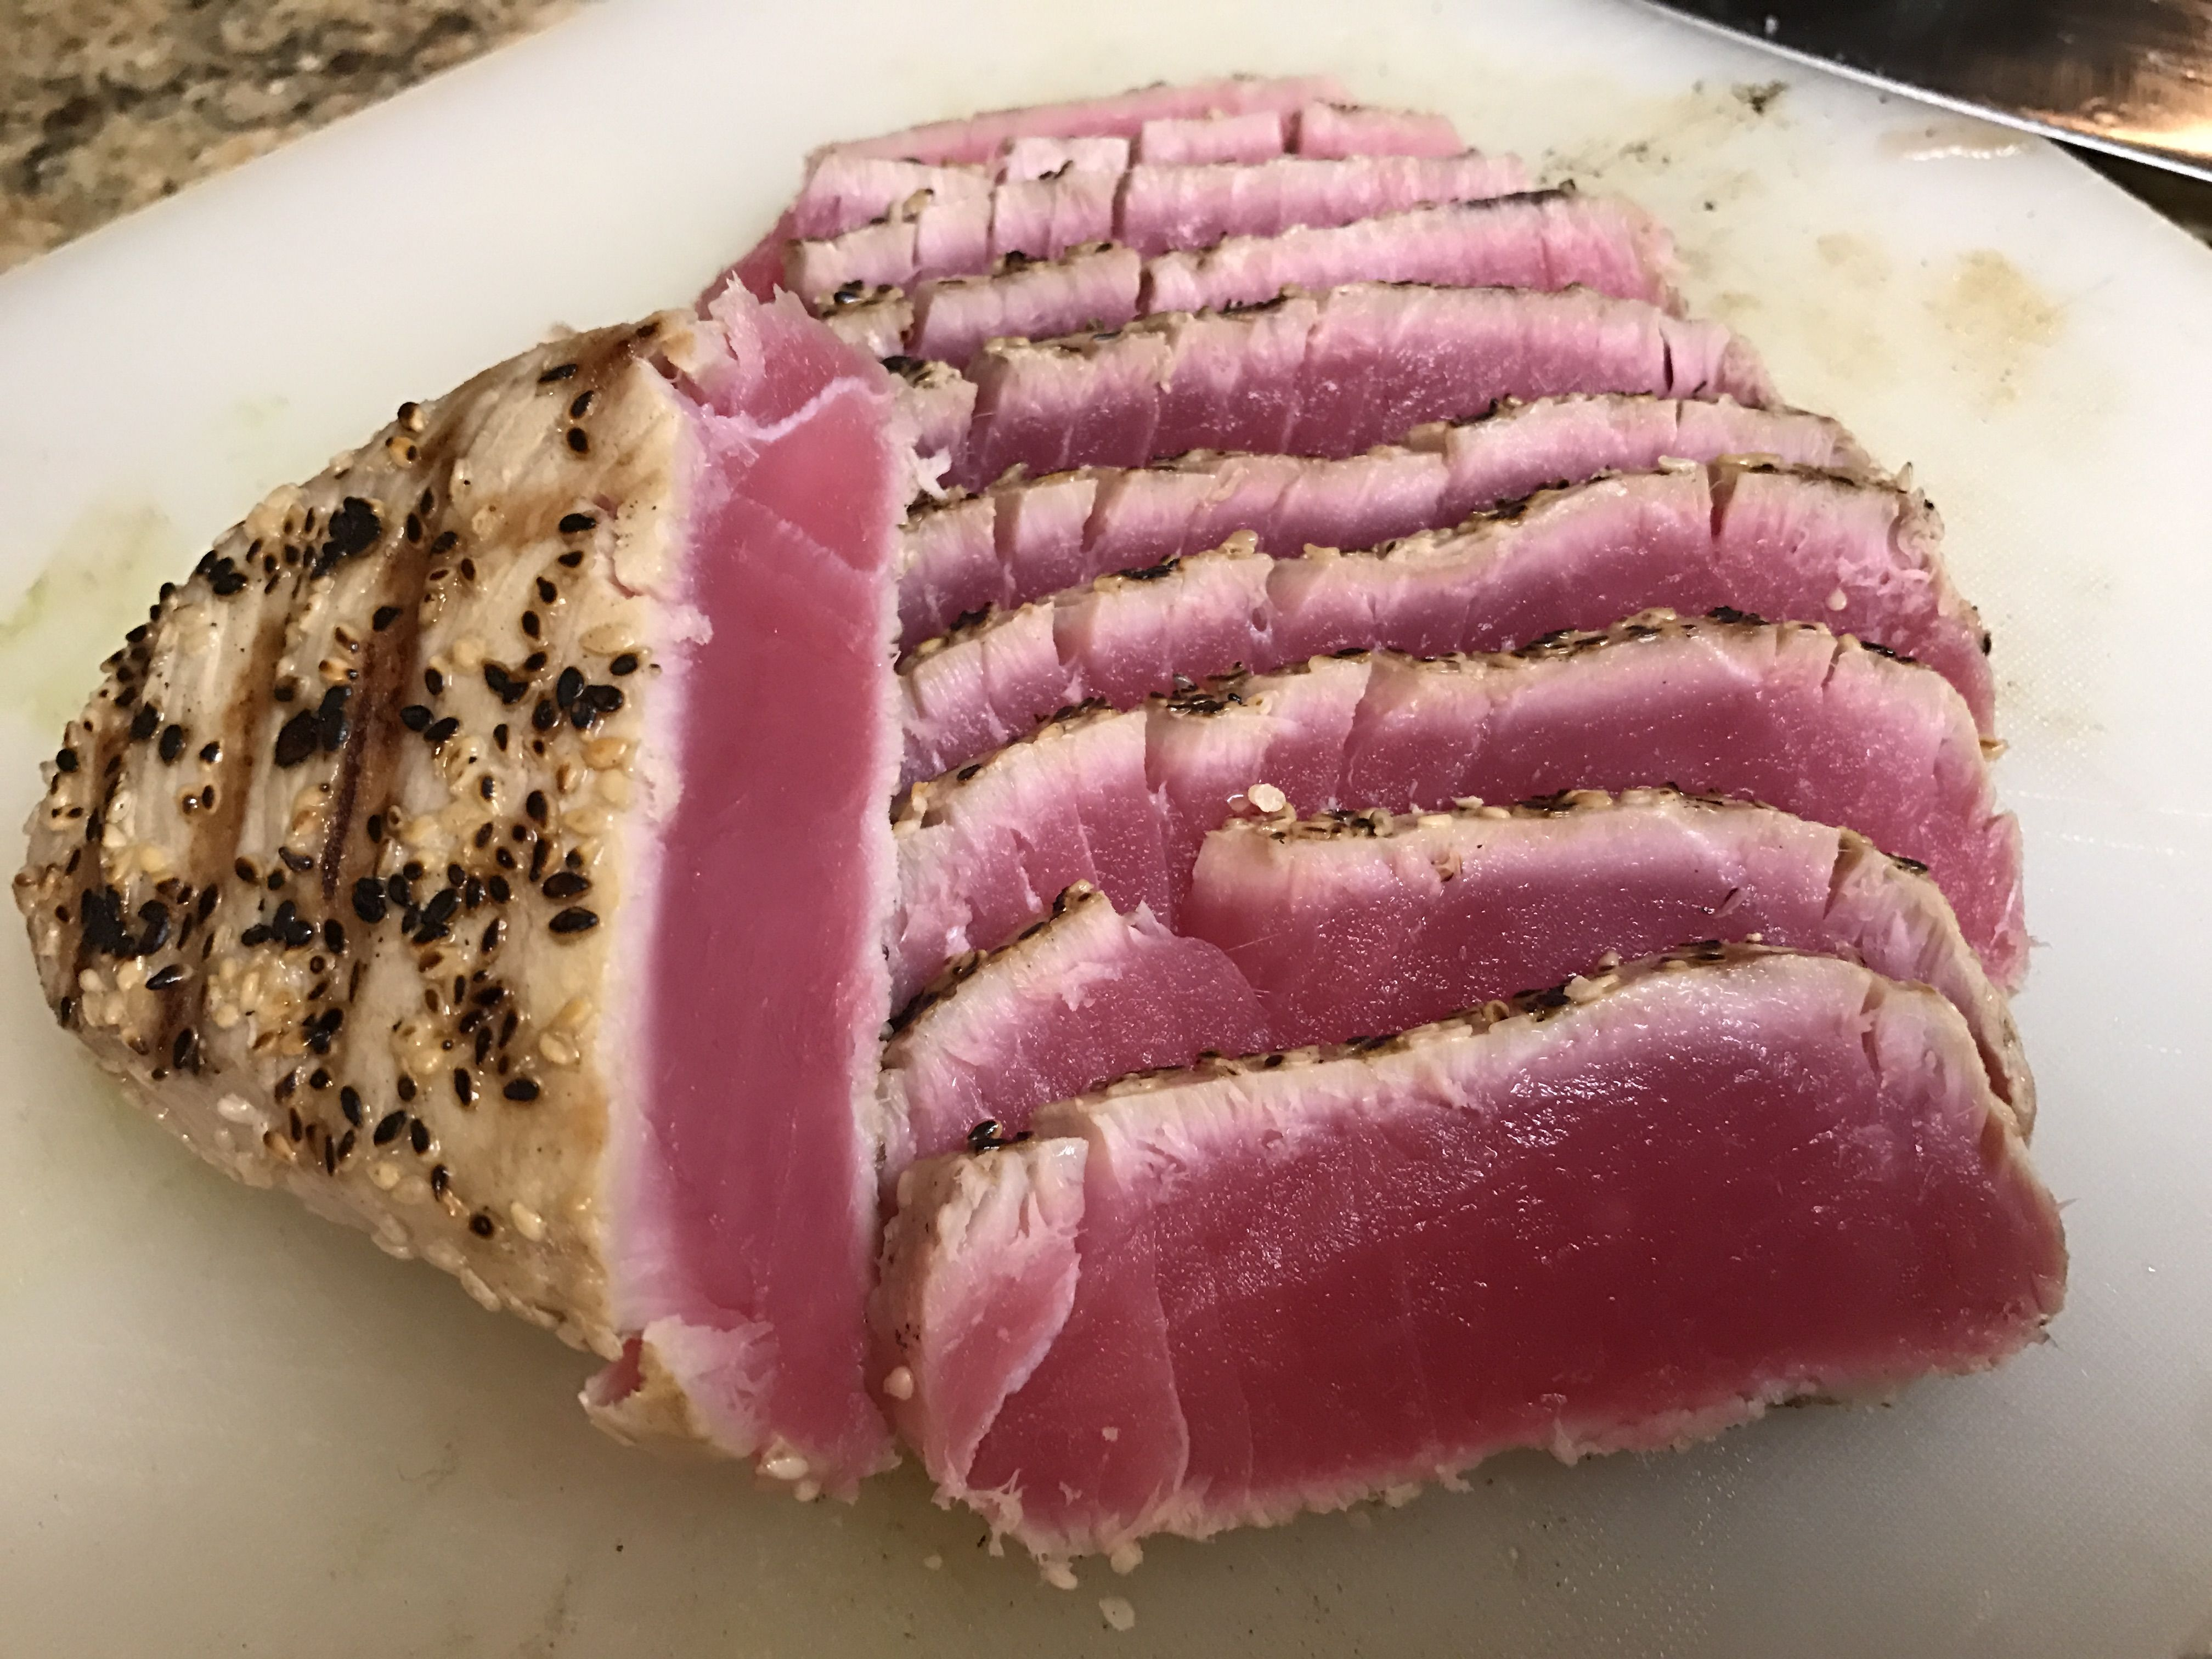 Seared Bluefin Tuna Steak Homemade Recipes Food Cooking Delicious Foodie Foodrecipes Cook Recipe Health Bluefin Tuna Recipe Bluefin Tuna Food